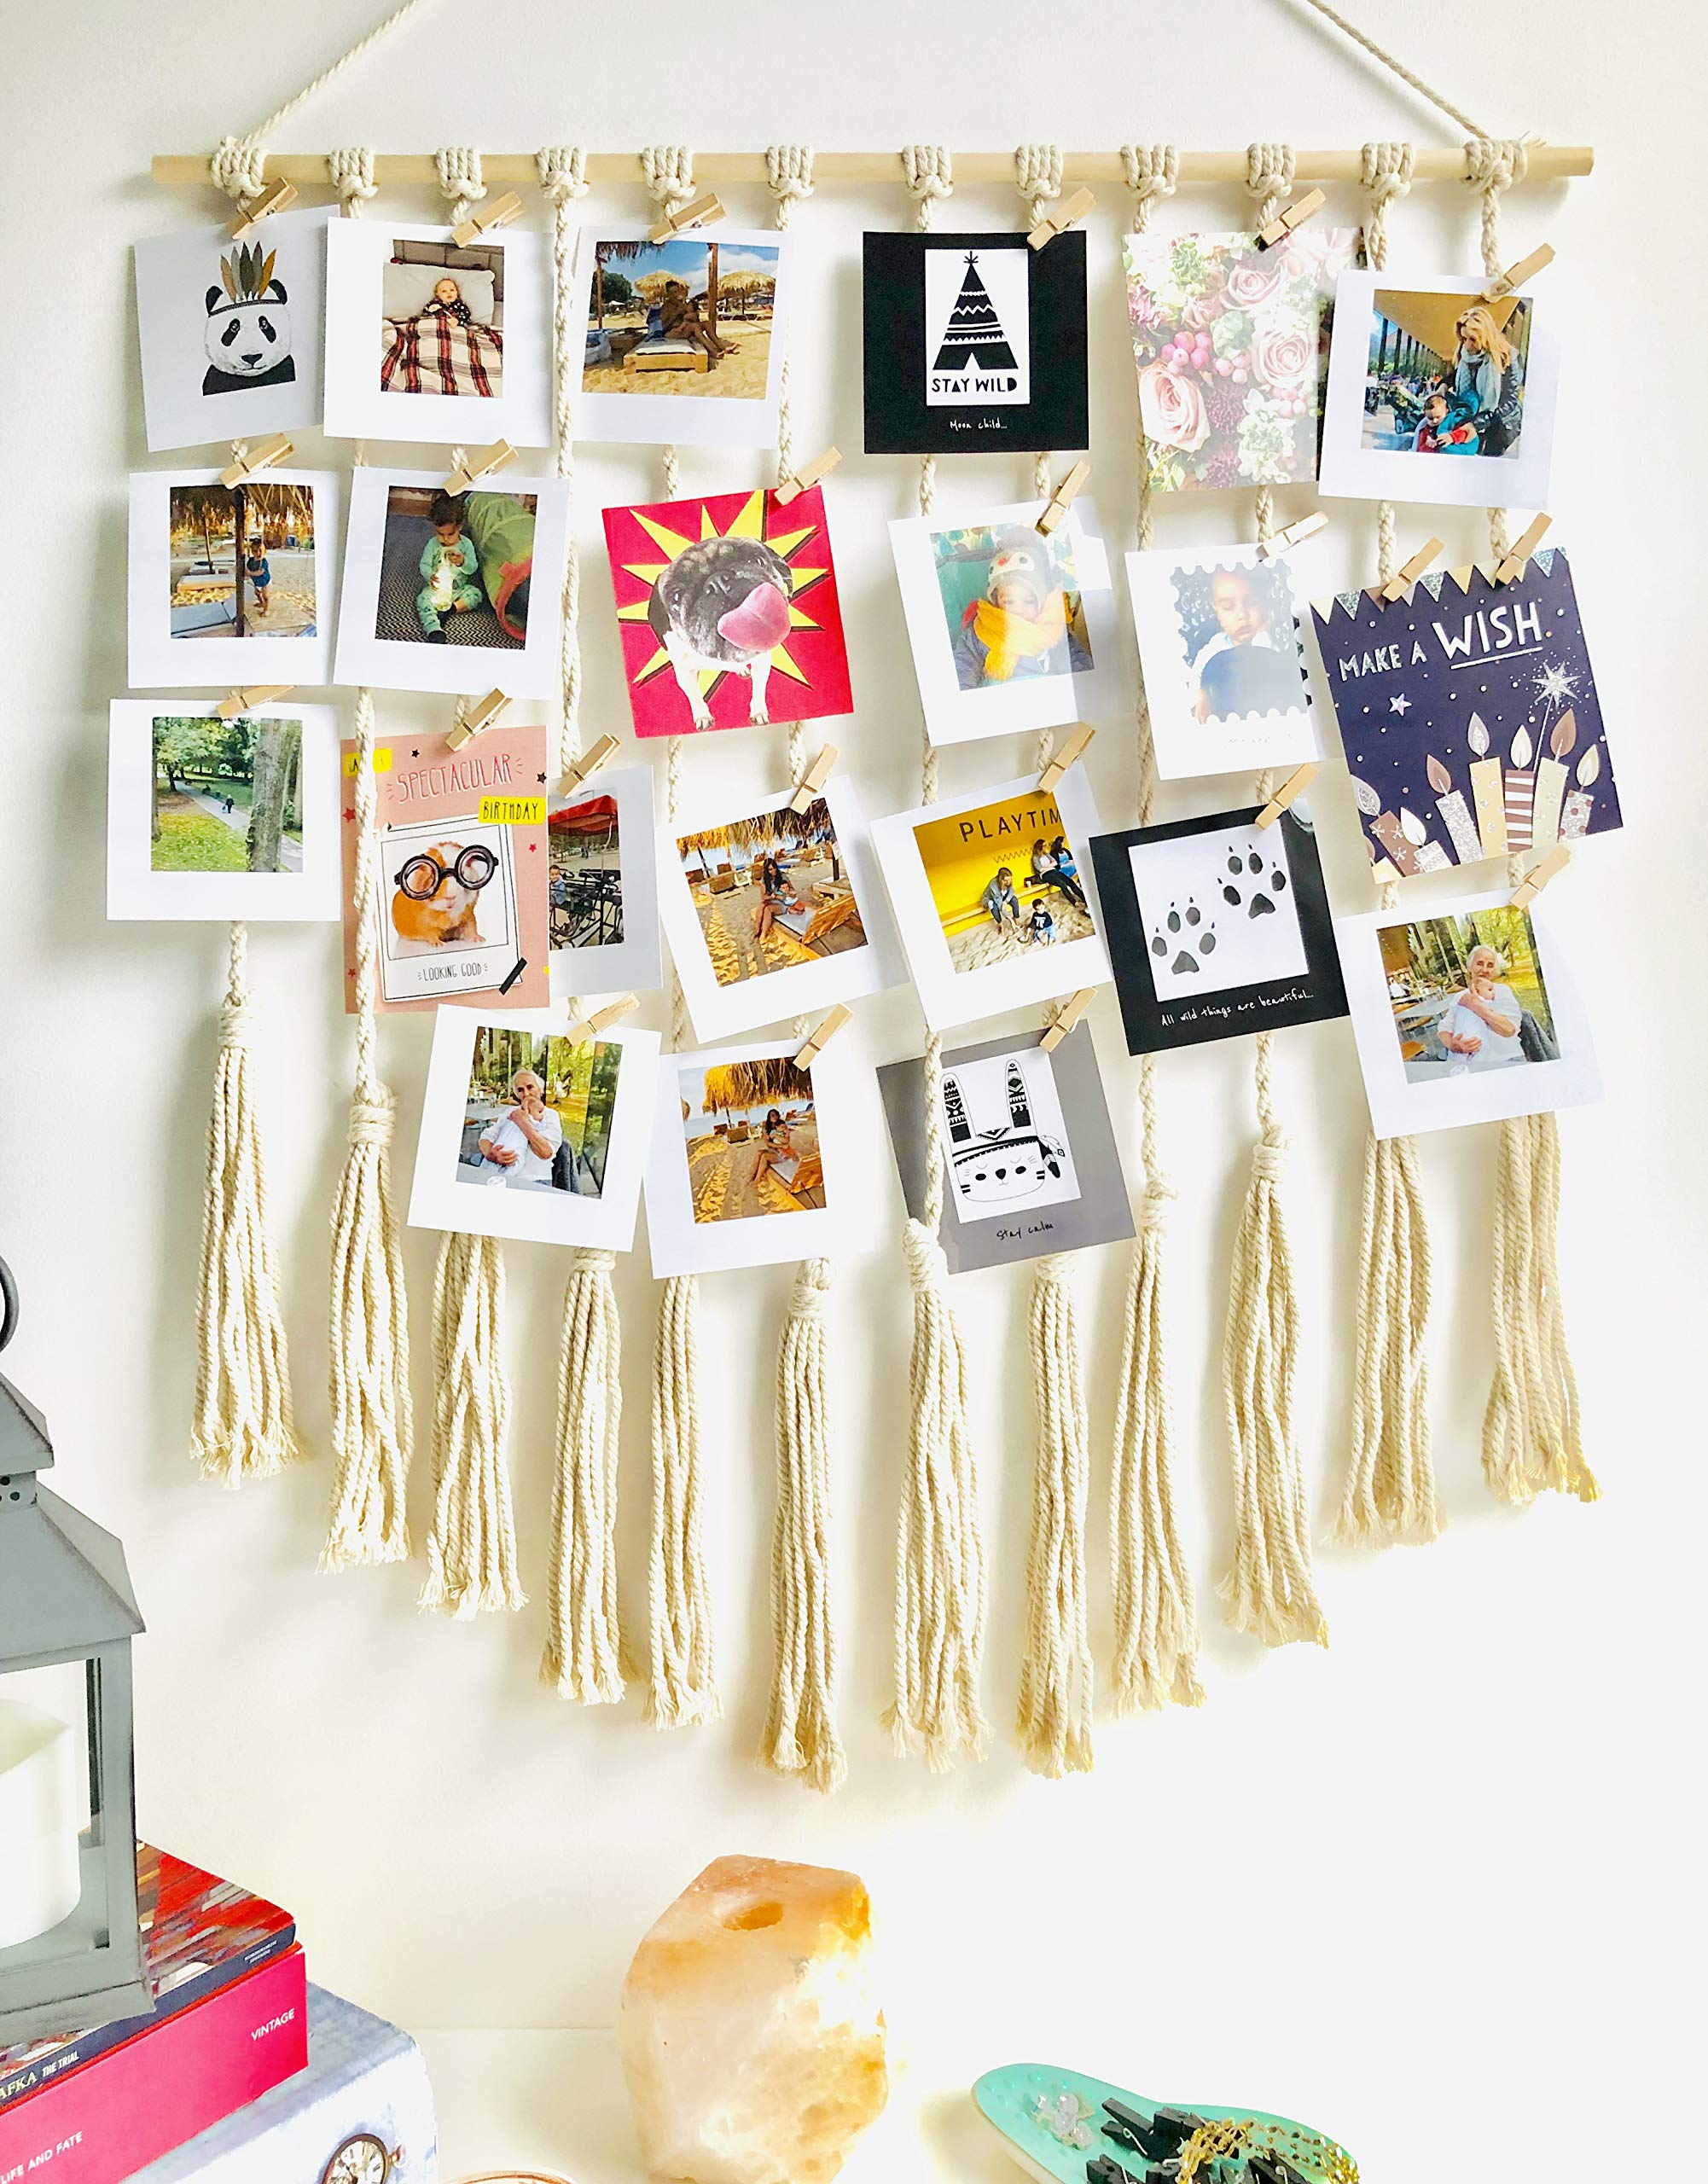 Large Macrame Hanging Photo Display Picture Frames  With 30 Wood Clips Boho Wall Decor For Home, Living Room, Bedroom, Wedding, Ivory   by URBAN HOUSE